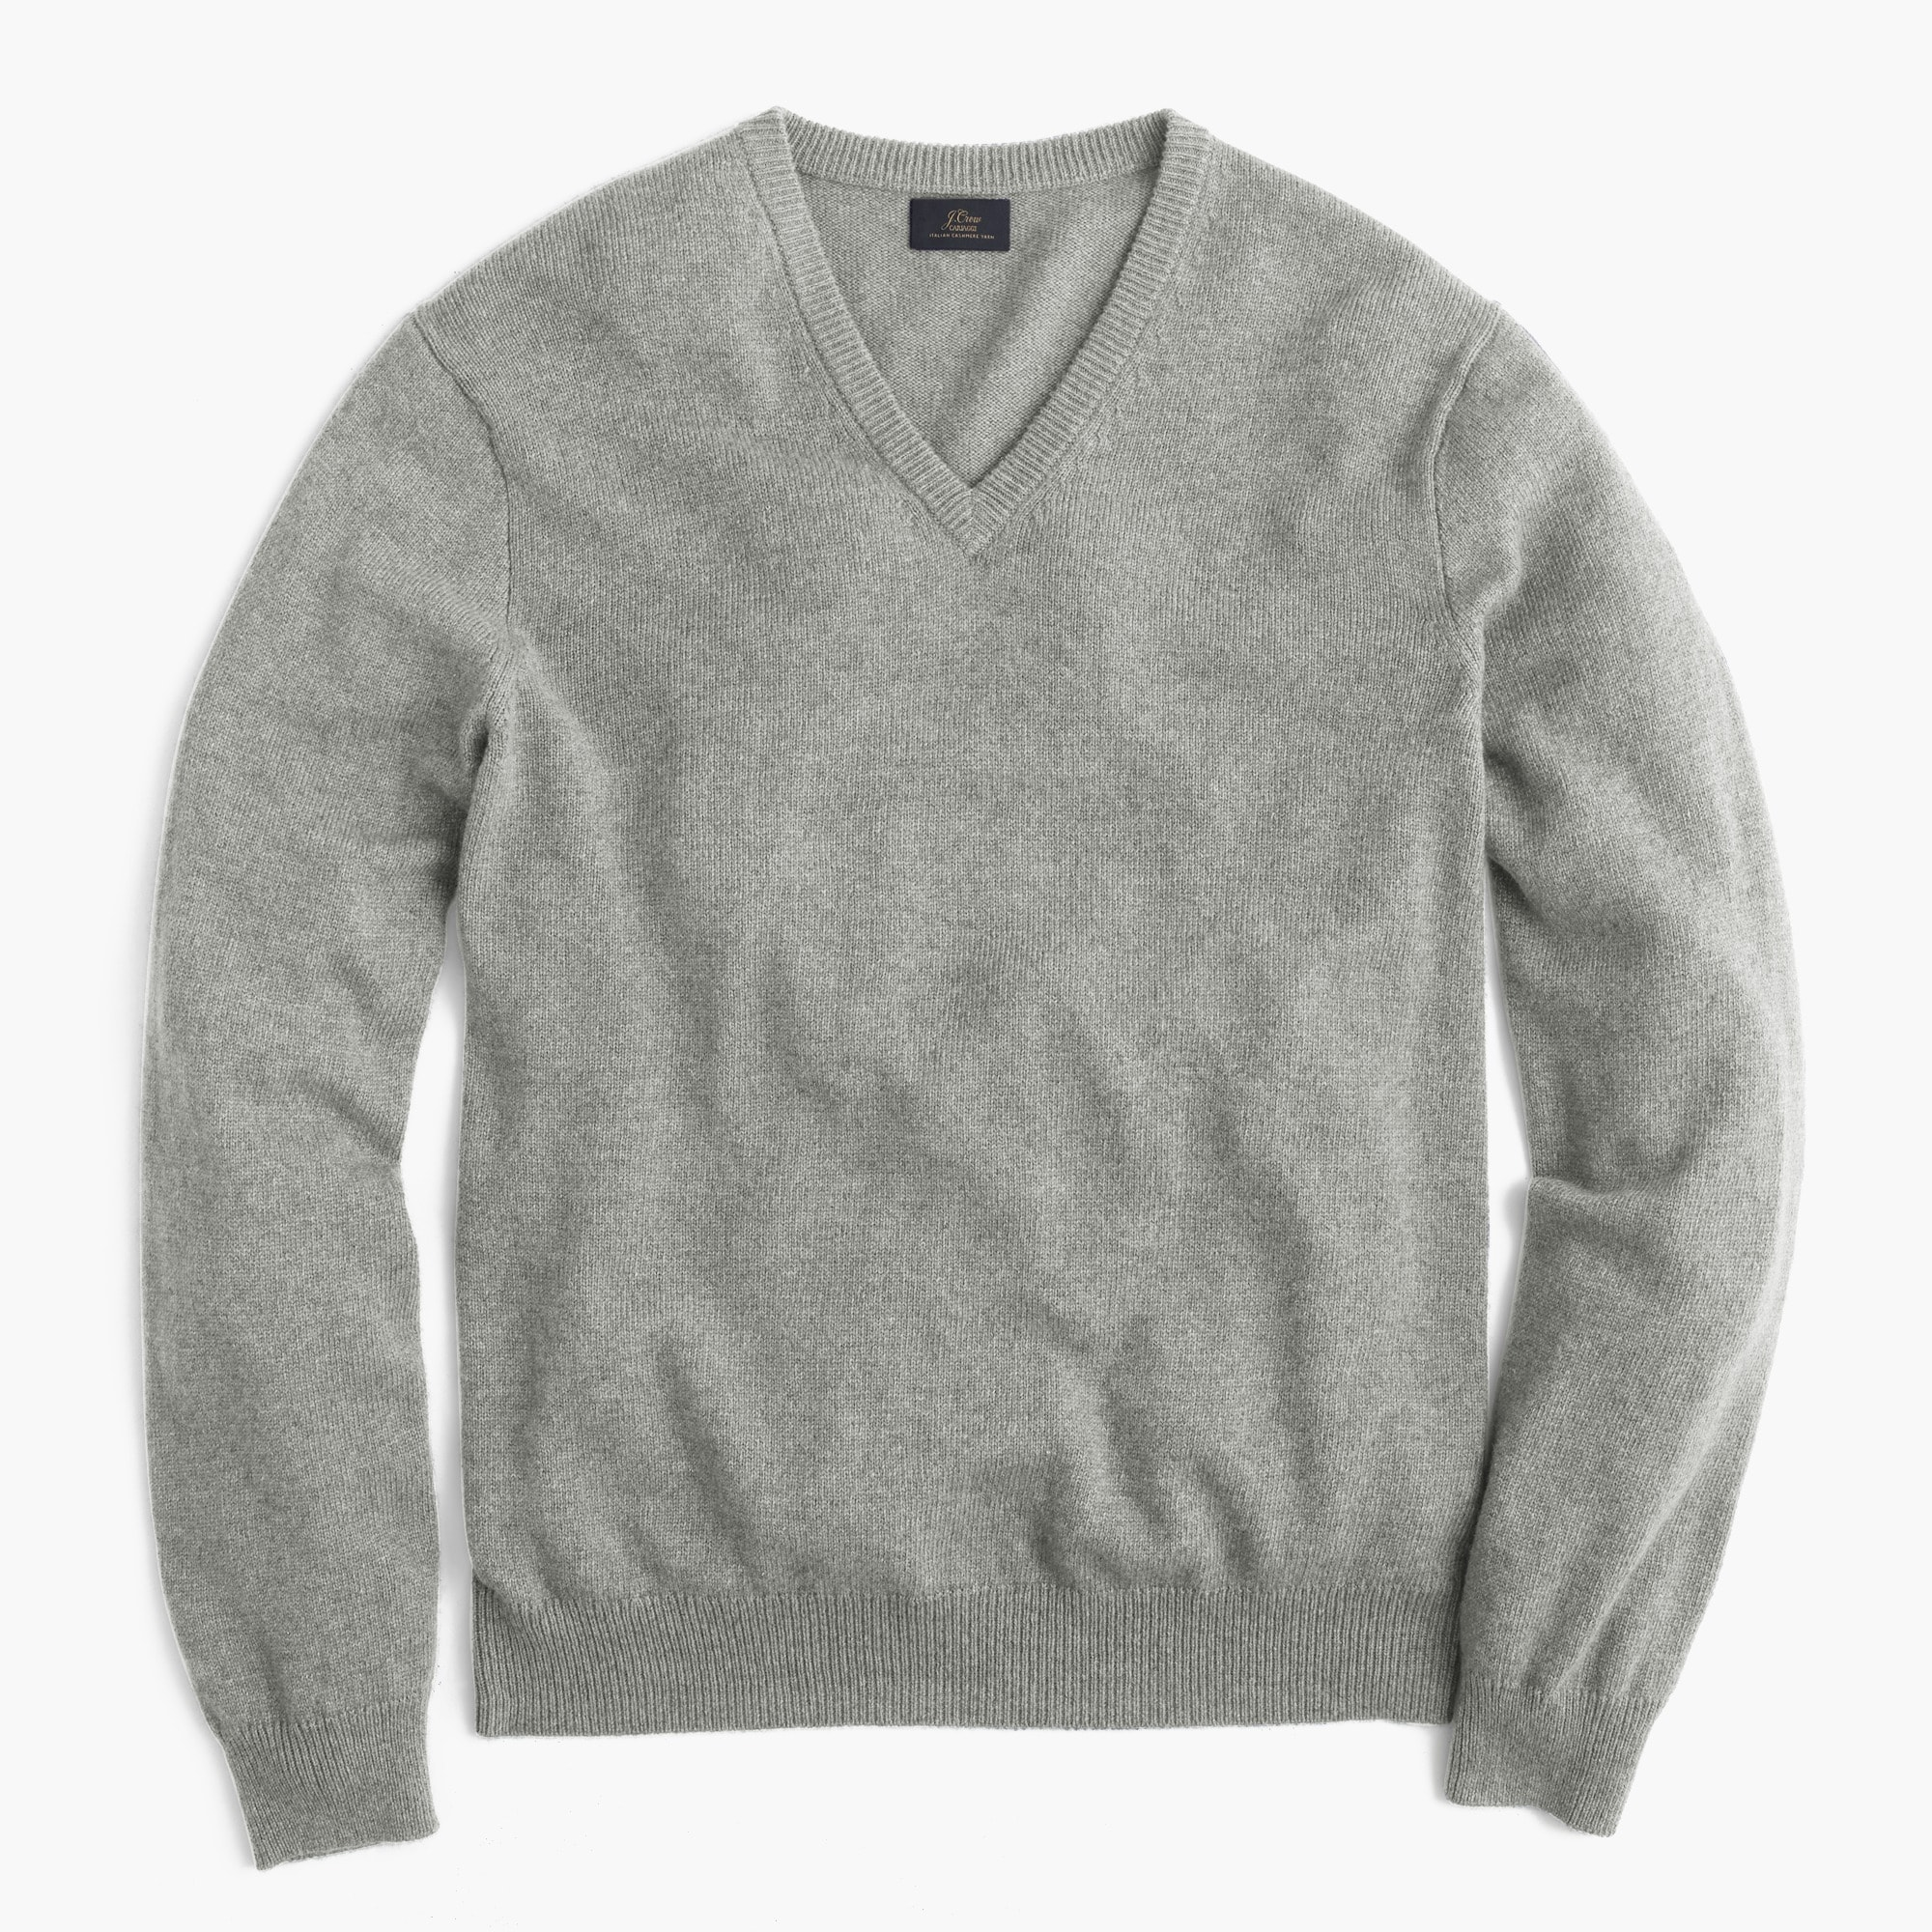 Tall Italian cashmere V-neck sweater